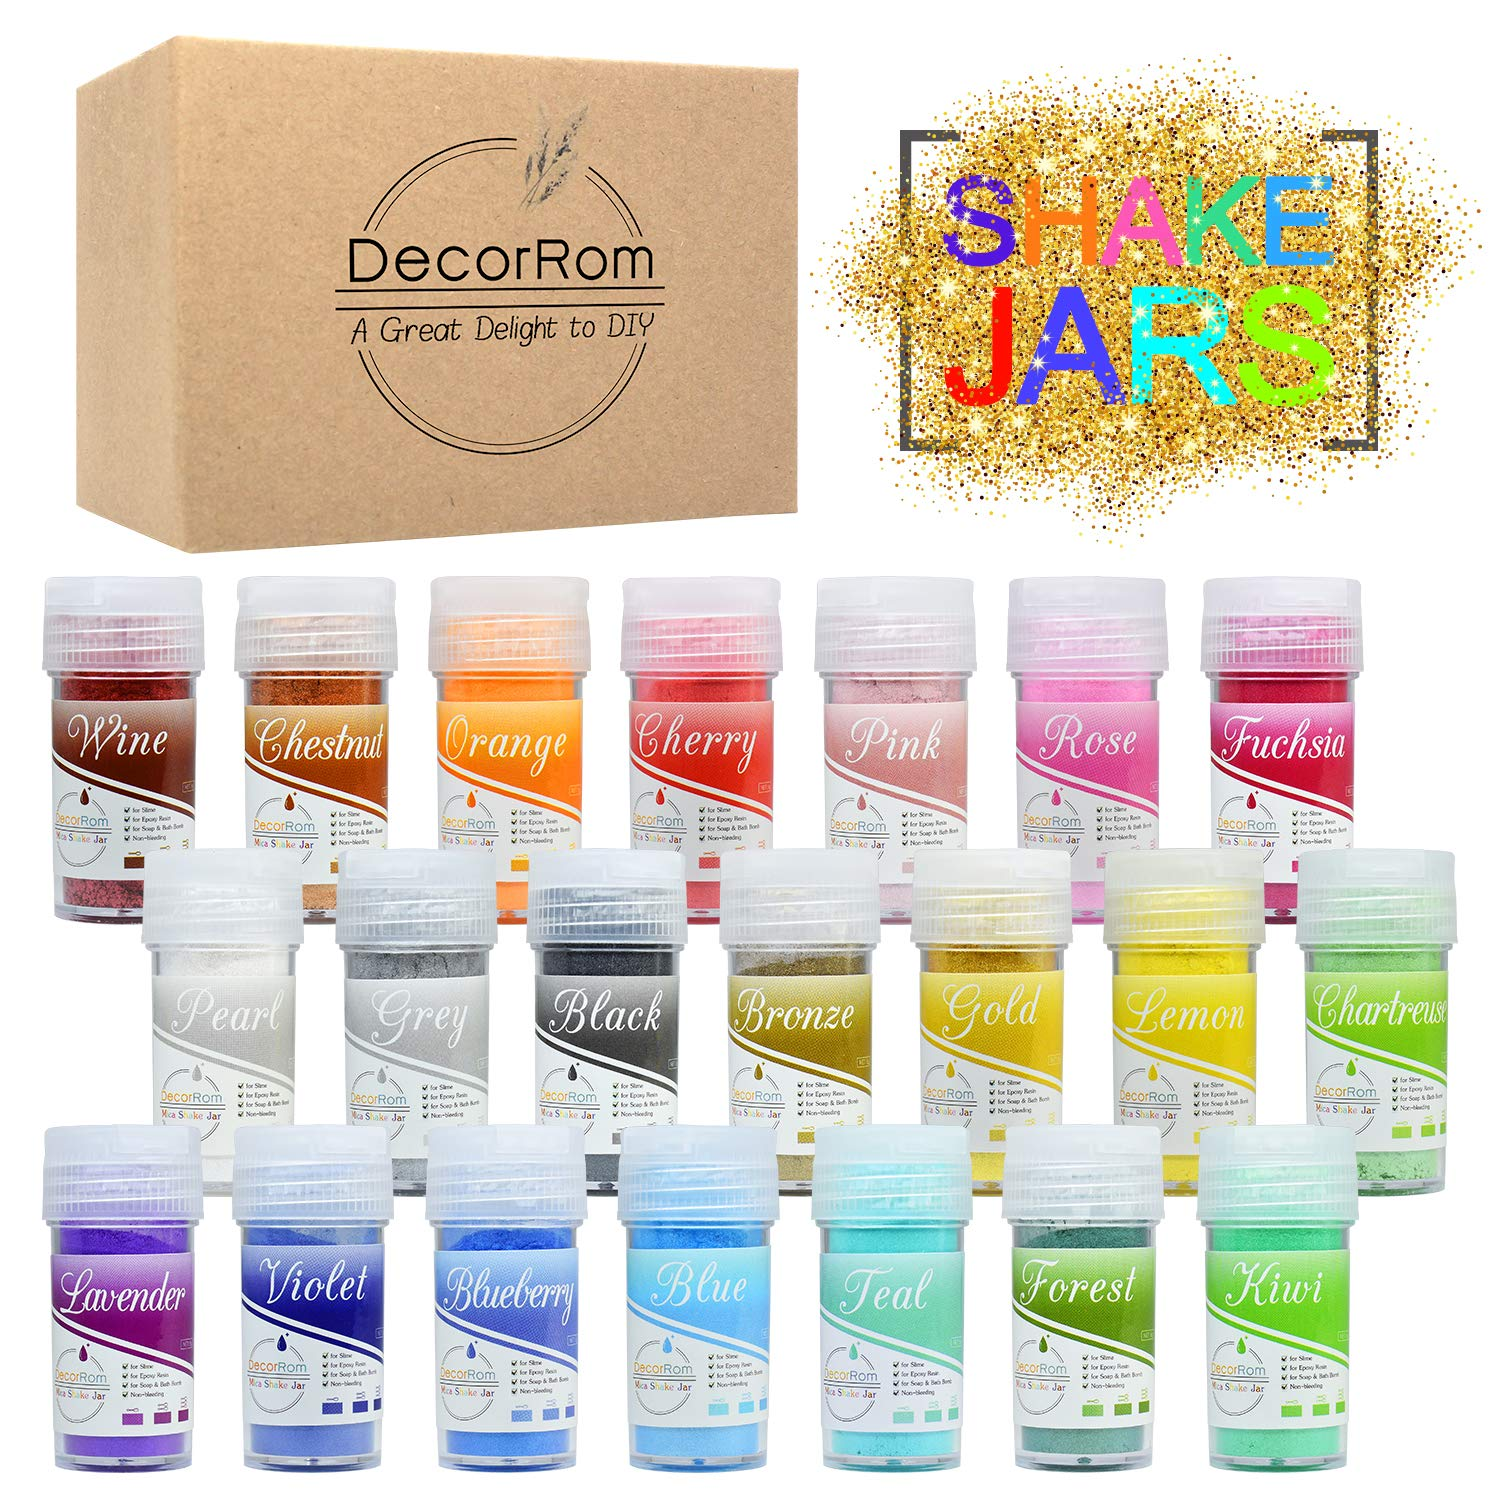 Epoxy Resin Color Pigment - 21 Color Mica Powder Shake Jars, Cosmetic Grade Epoxy Resin Dye Powder, Natural Slime Coloring Soap Dye Colorant for Soap Making Supplies,Nail Art,Bath Bomb,Slime Supplies